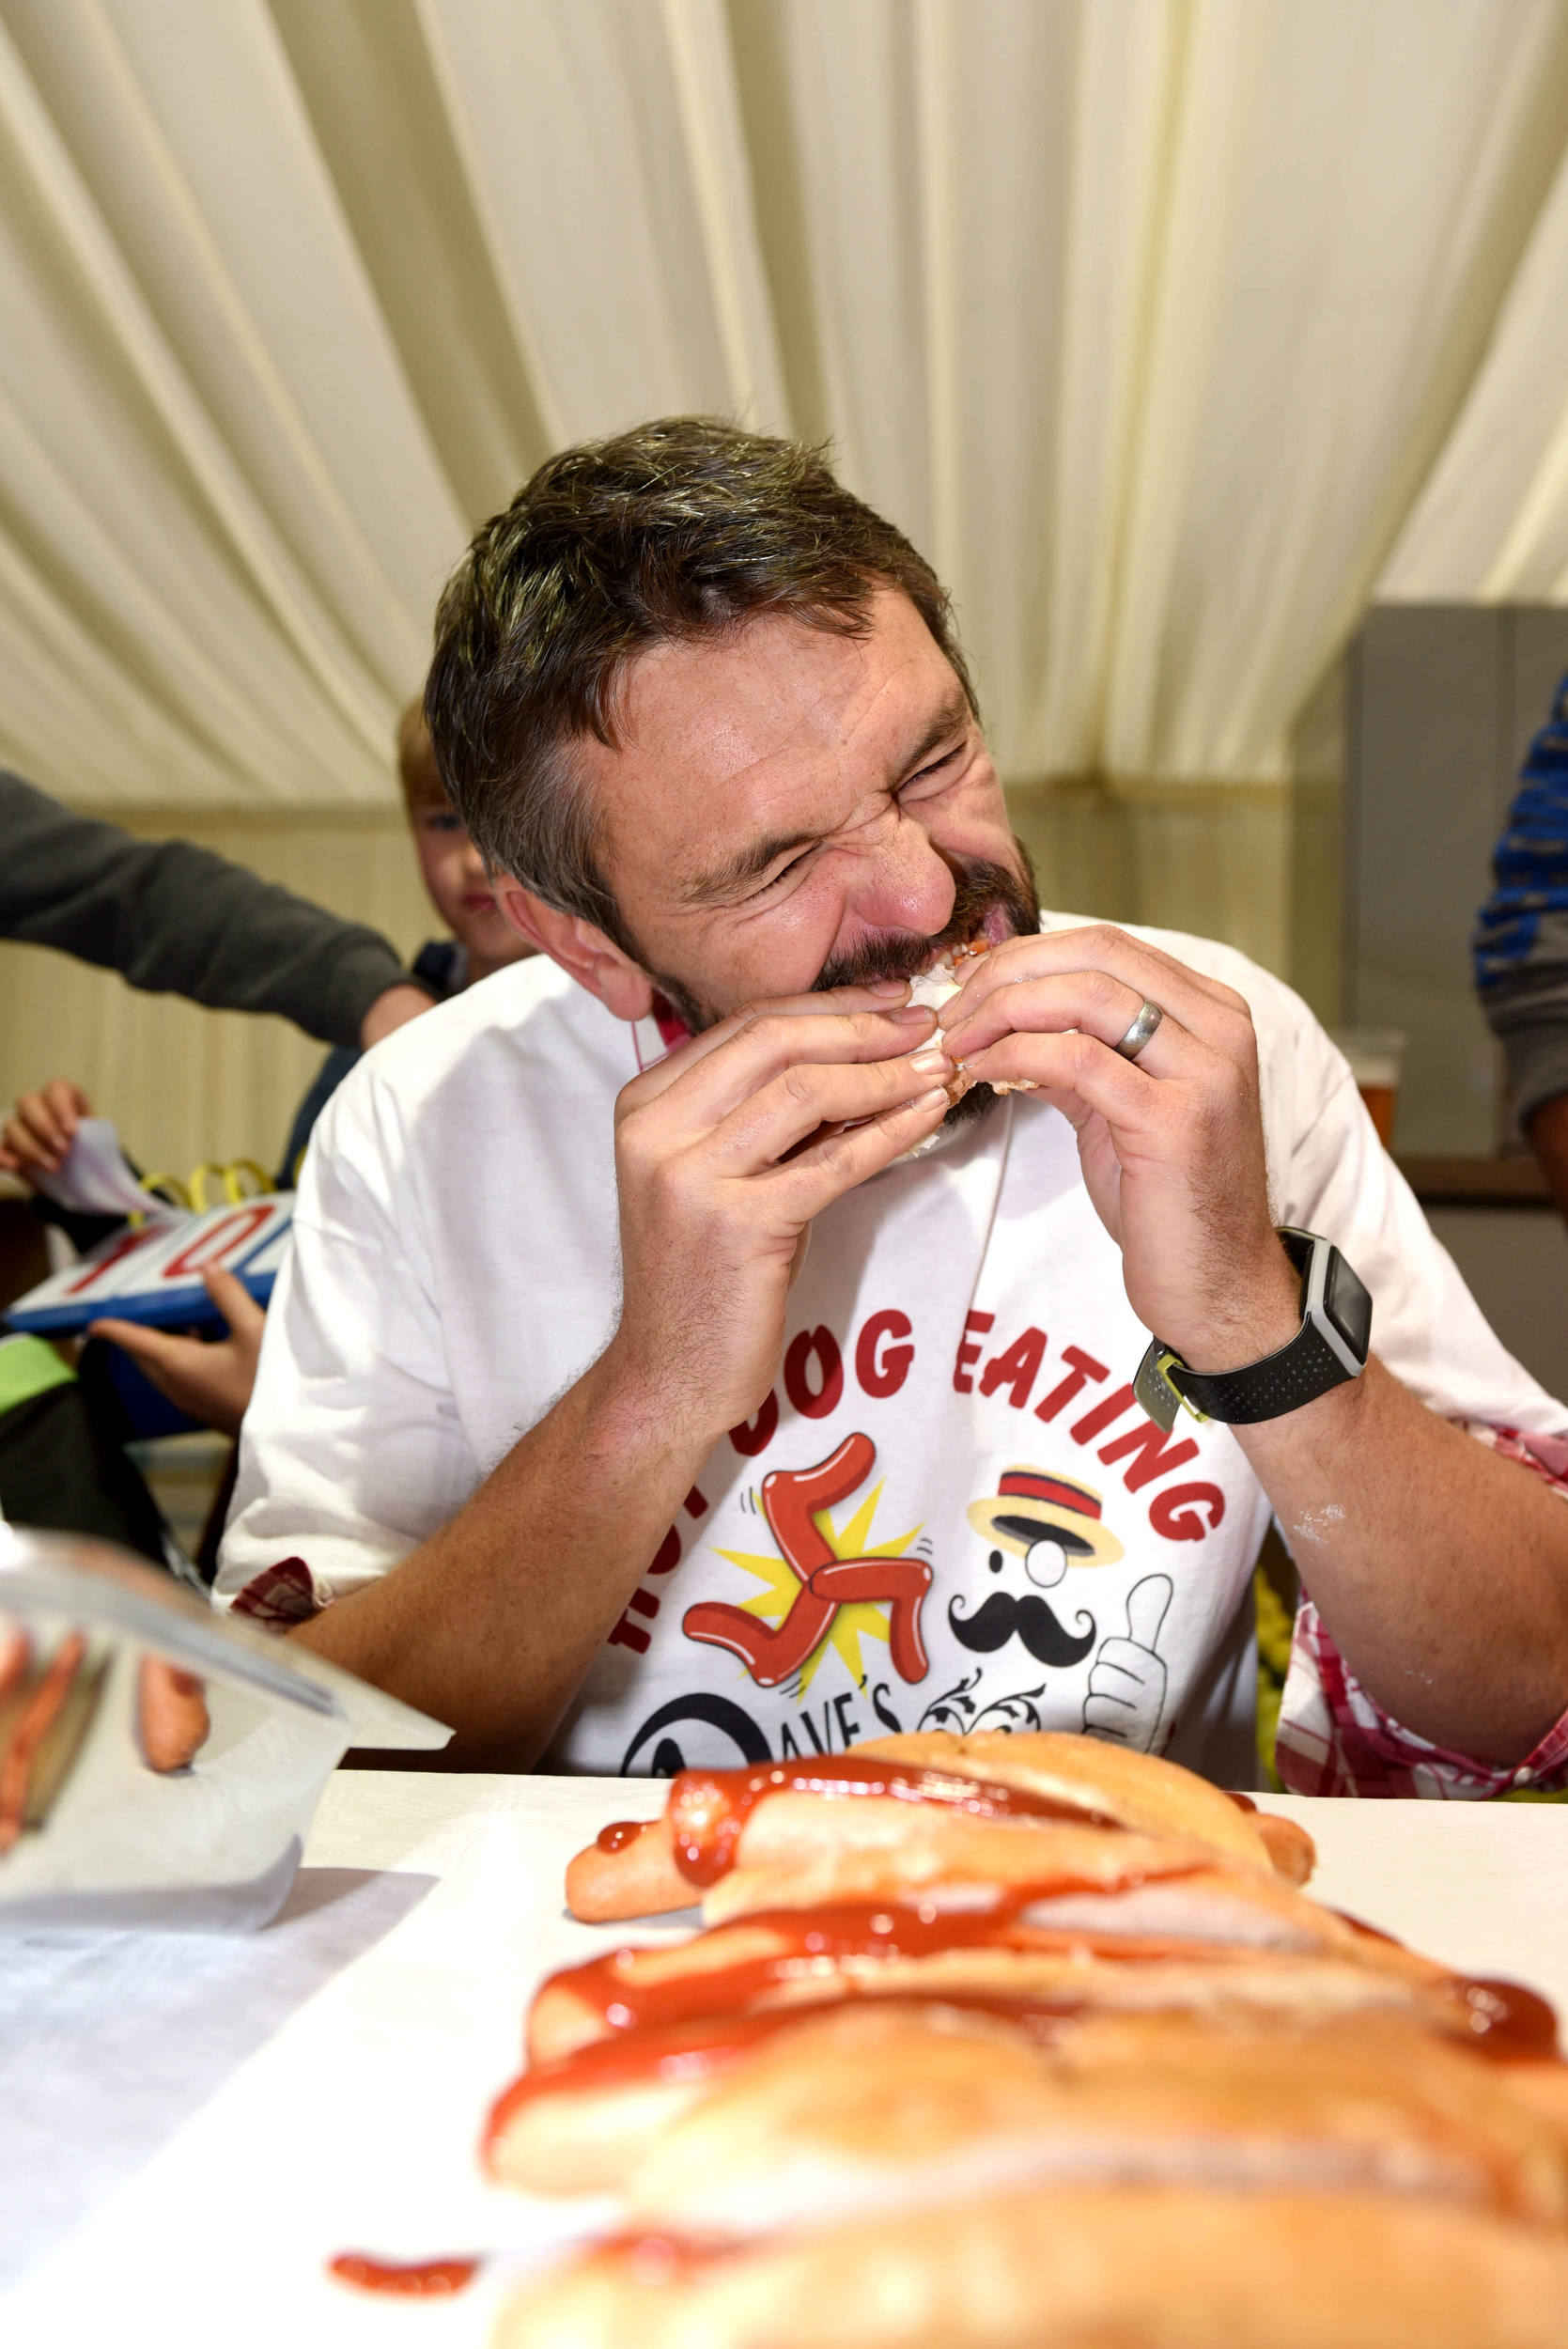 Glen Blacker takes part in the inaugural Hot Dog Eating Contest at the Isle of Man Food and Drink Festival